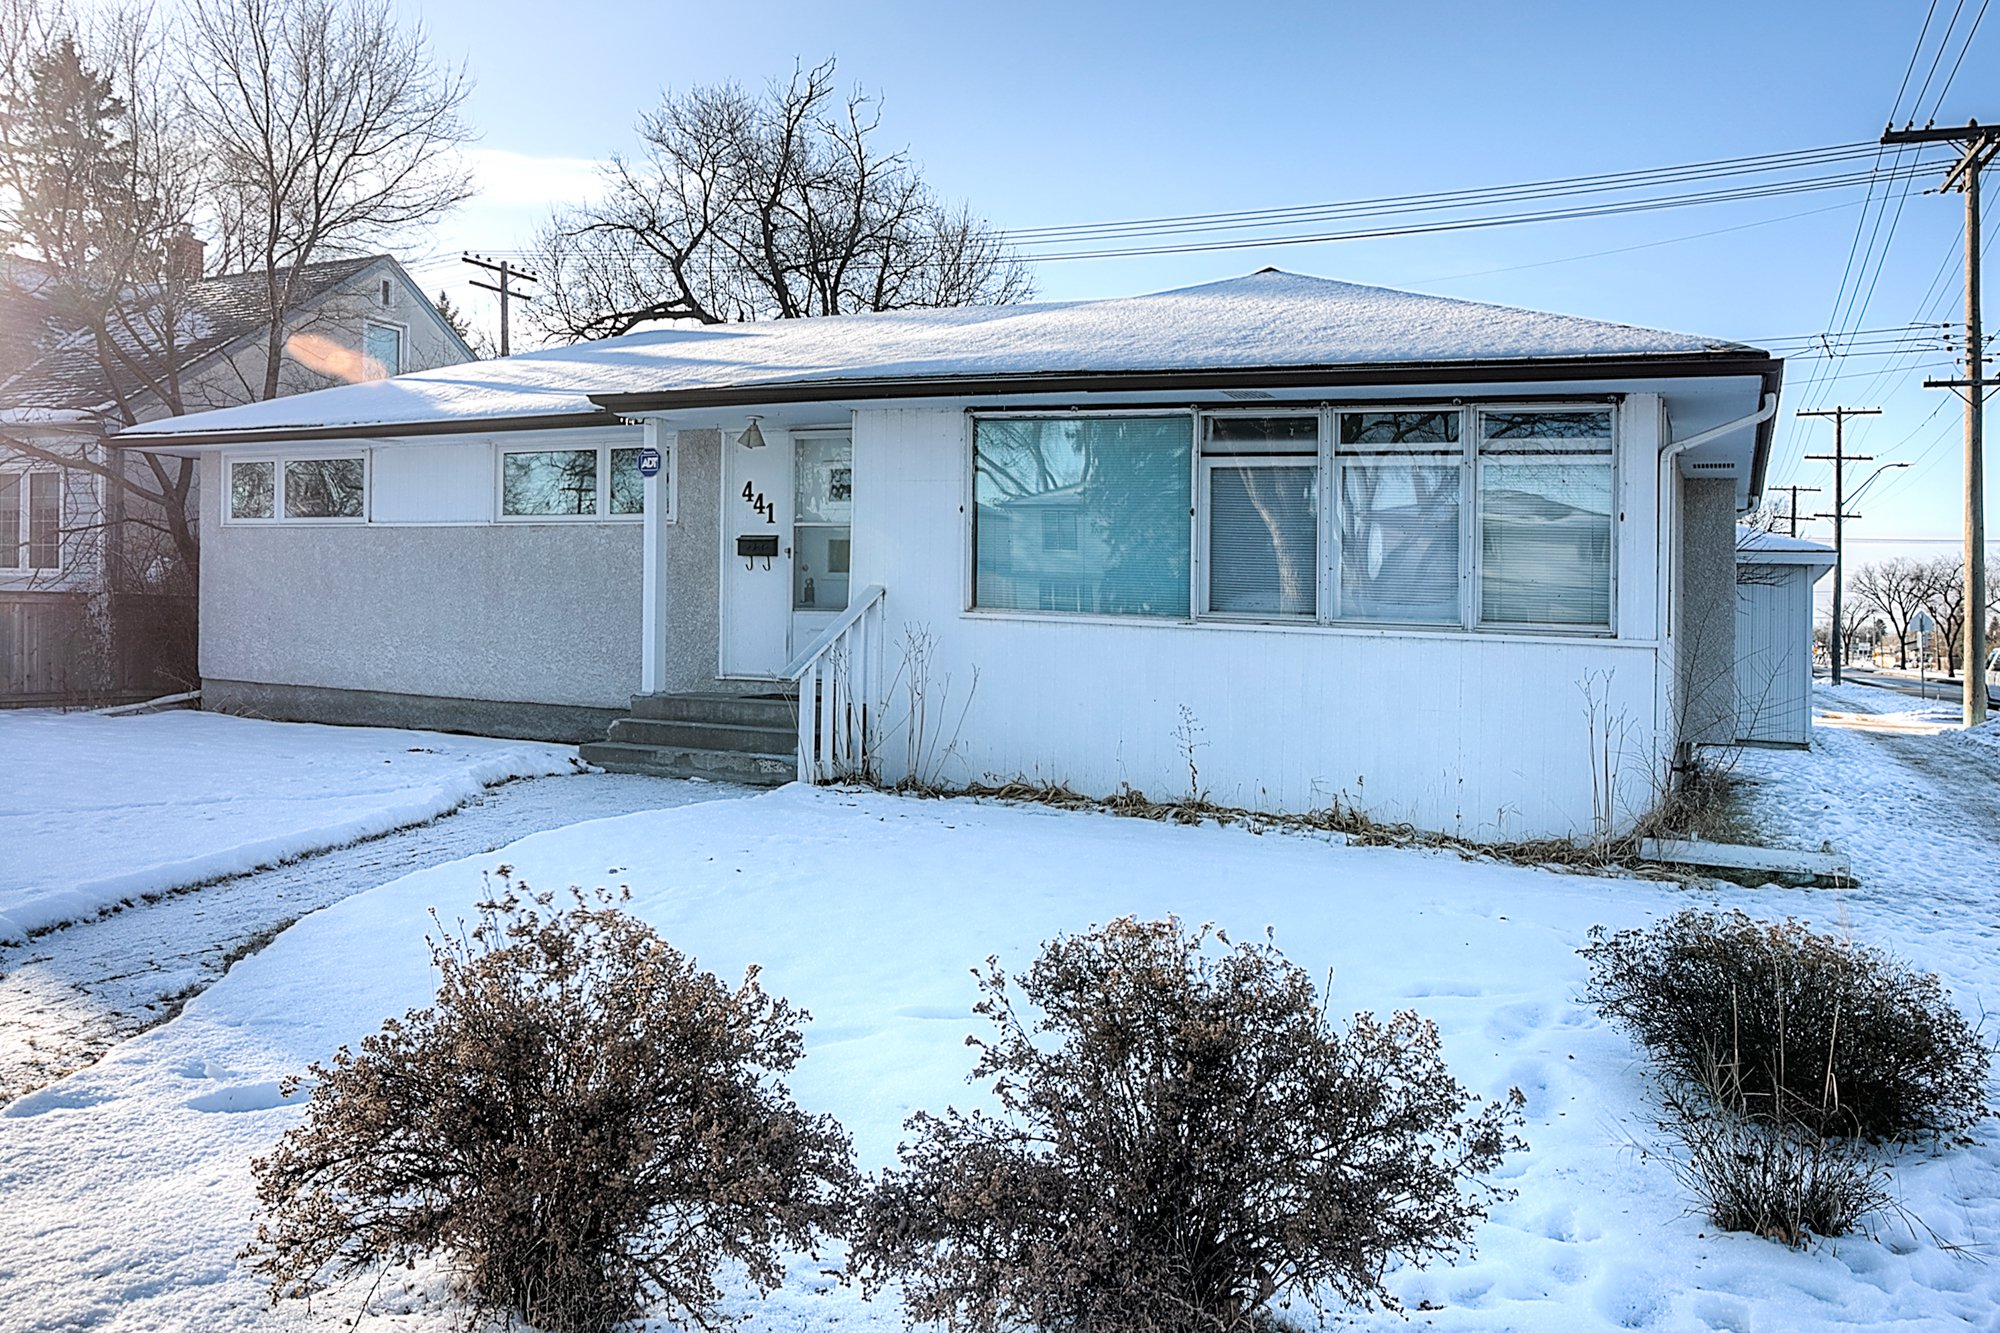 Main Photo: 441 Cordova Street in Winnipeg: Crescentwood Single Family Detached for sale (1D)  : MLS®# 1831989